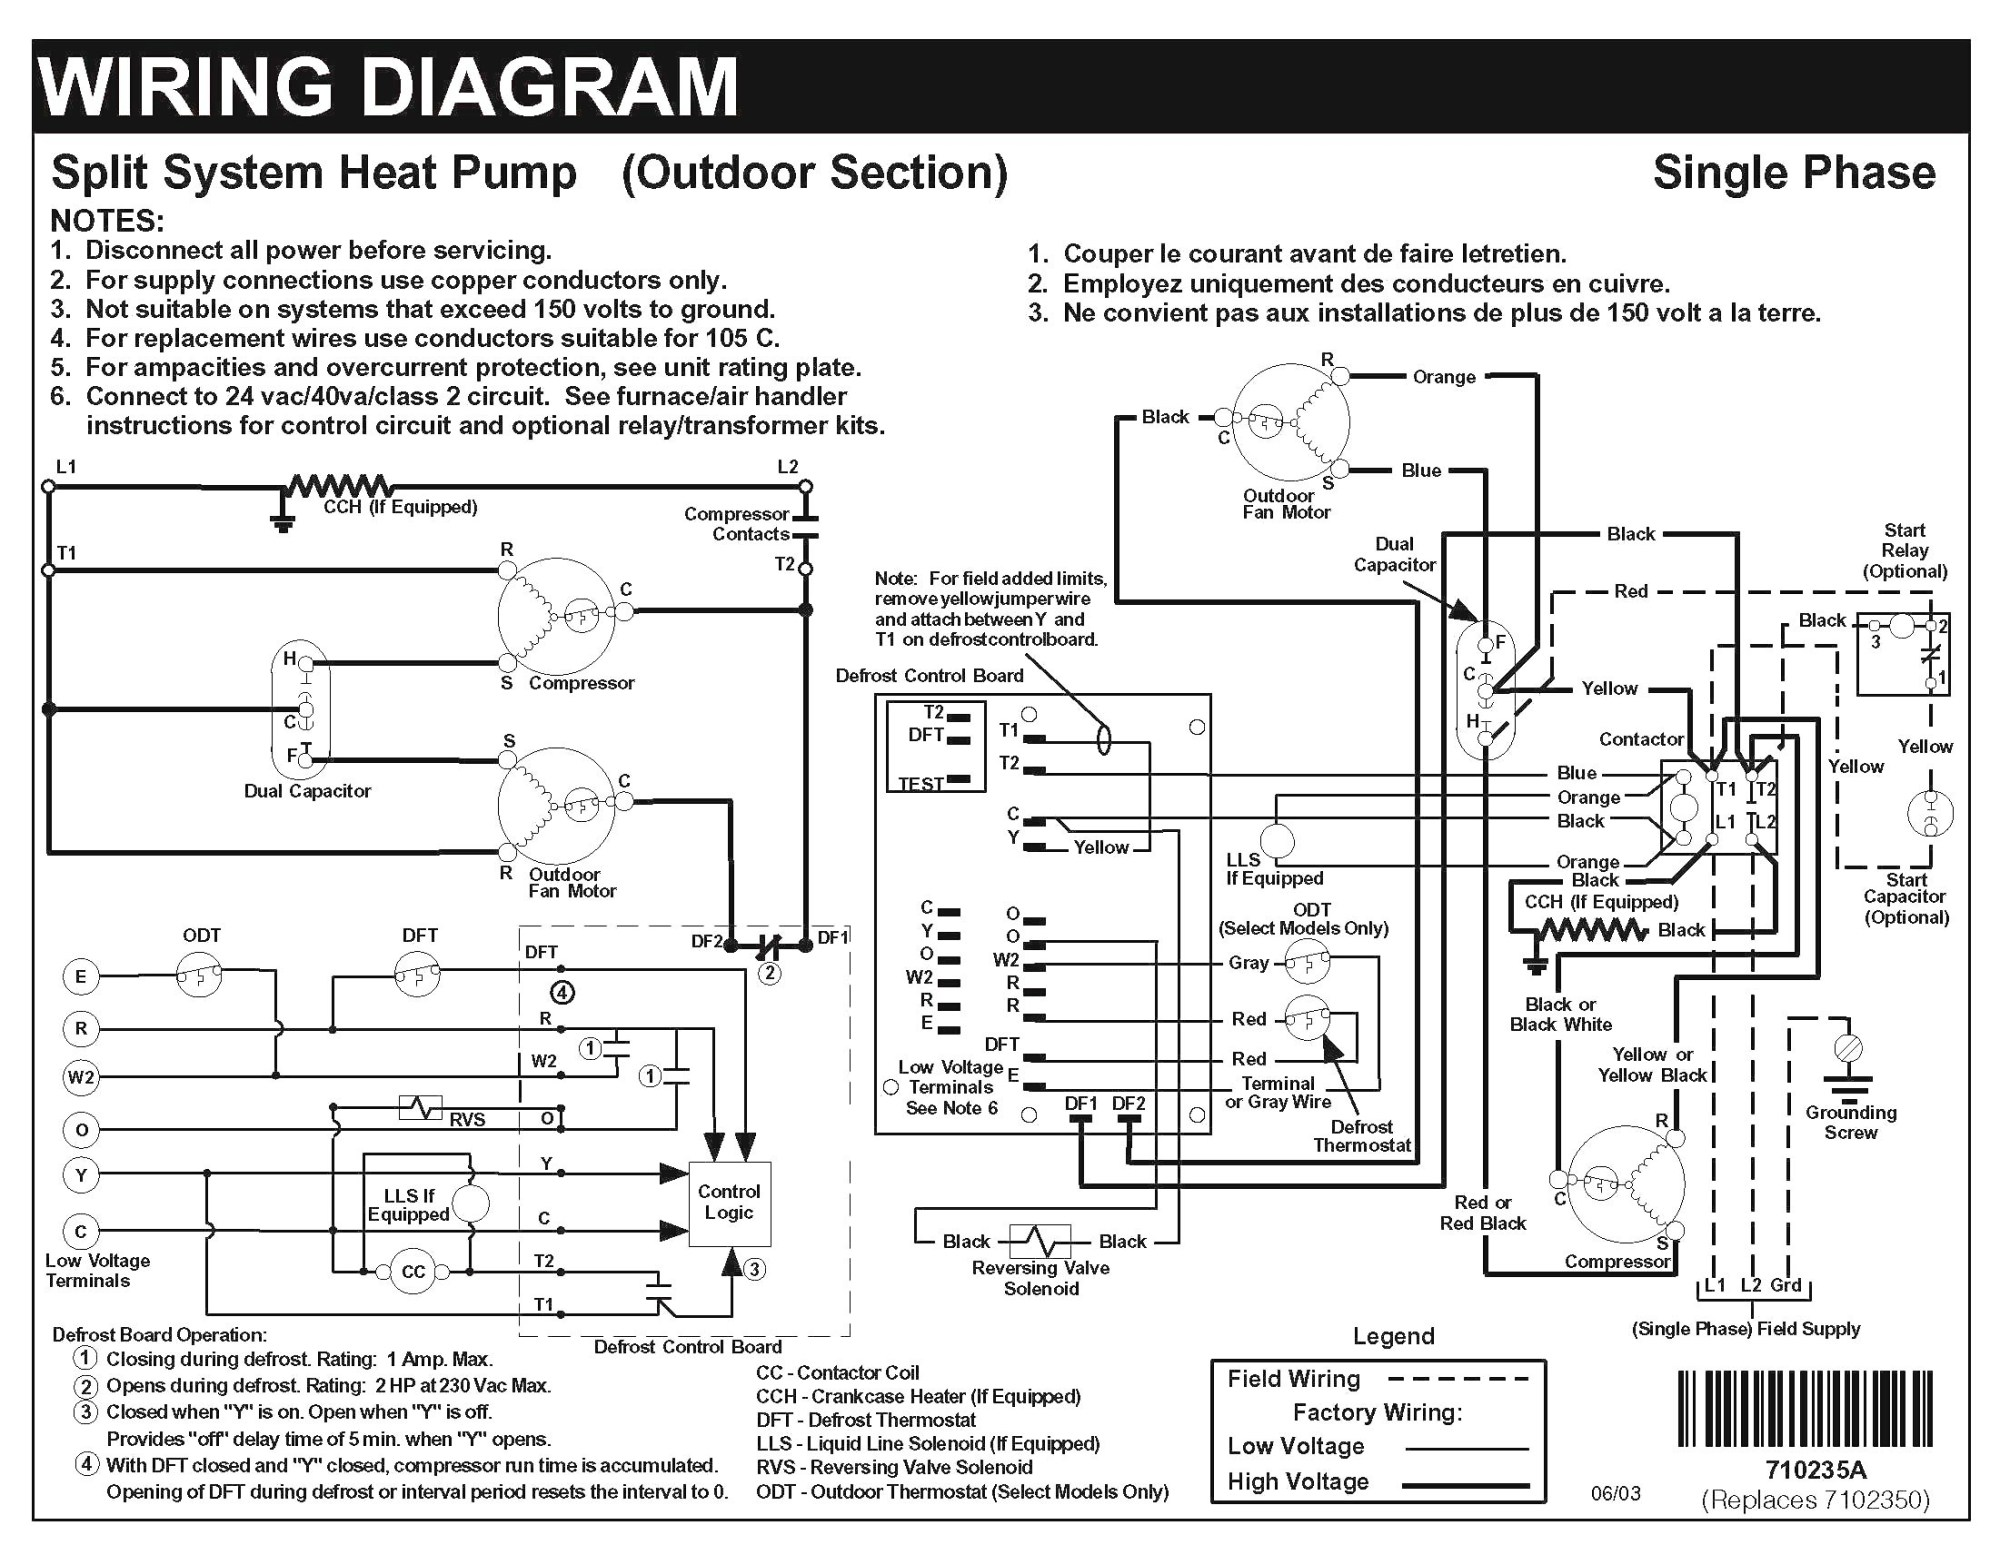 hight resolution of central air conditioner wiring diagram wiring diagram for central ac unit inspirationa wiring diagram for